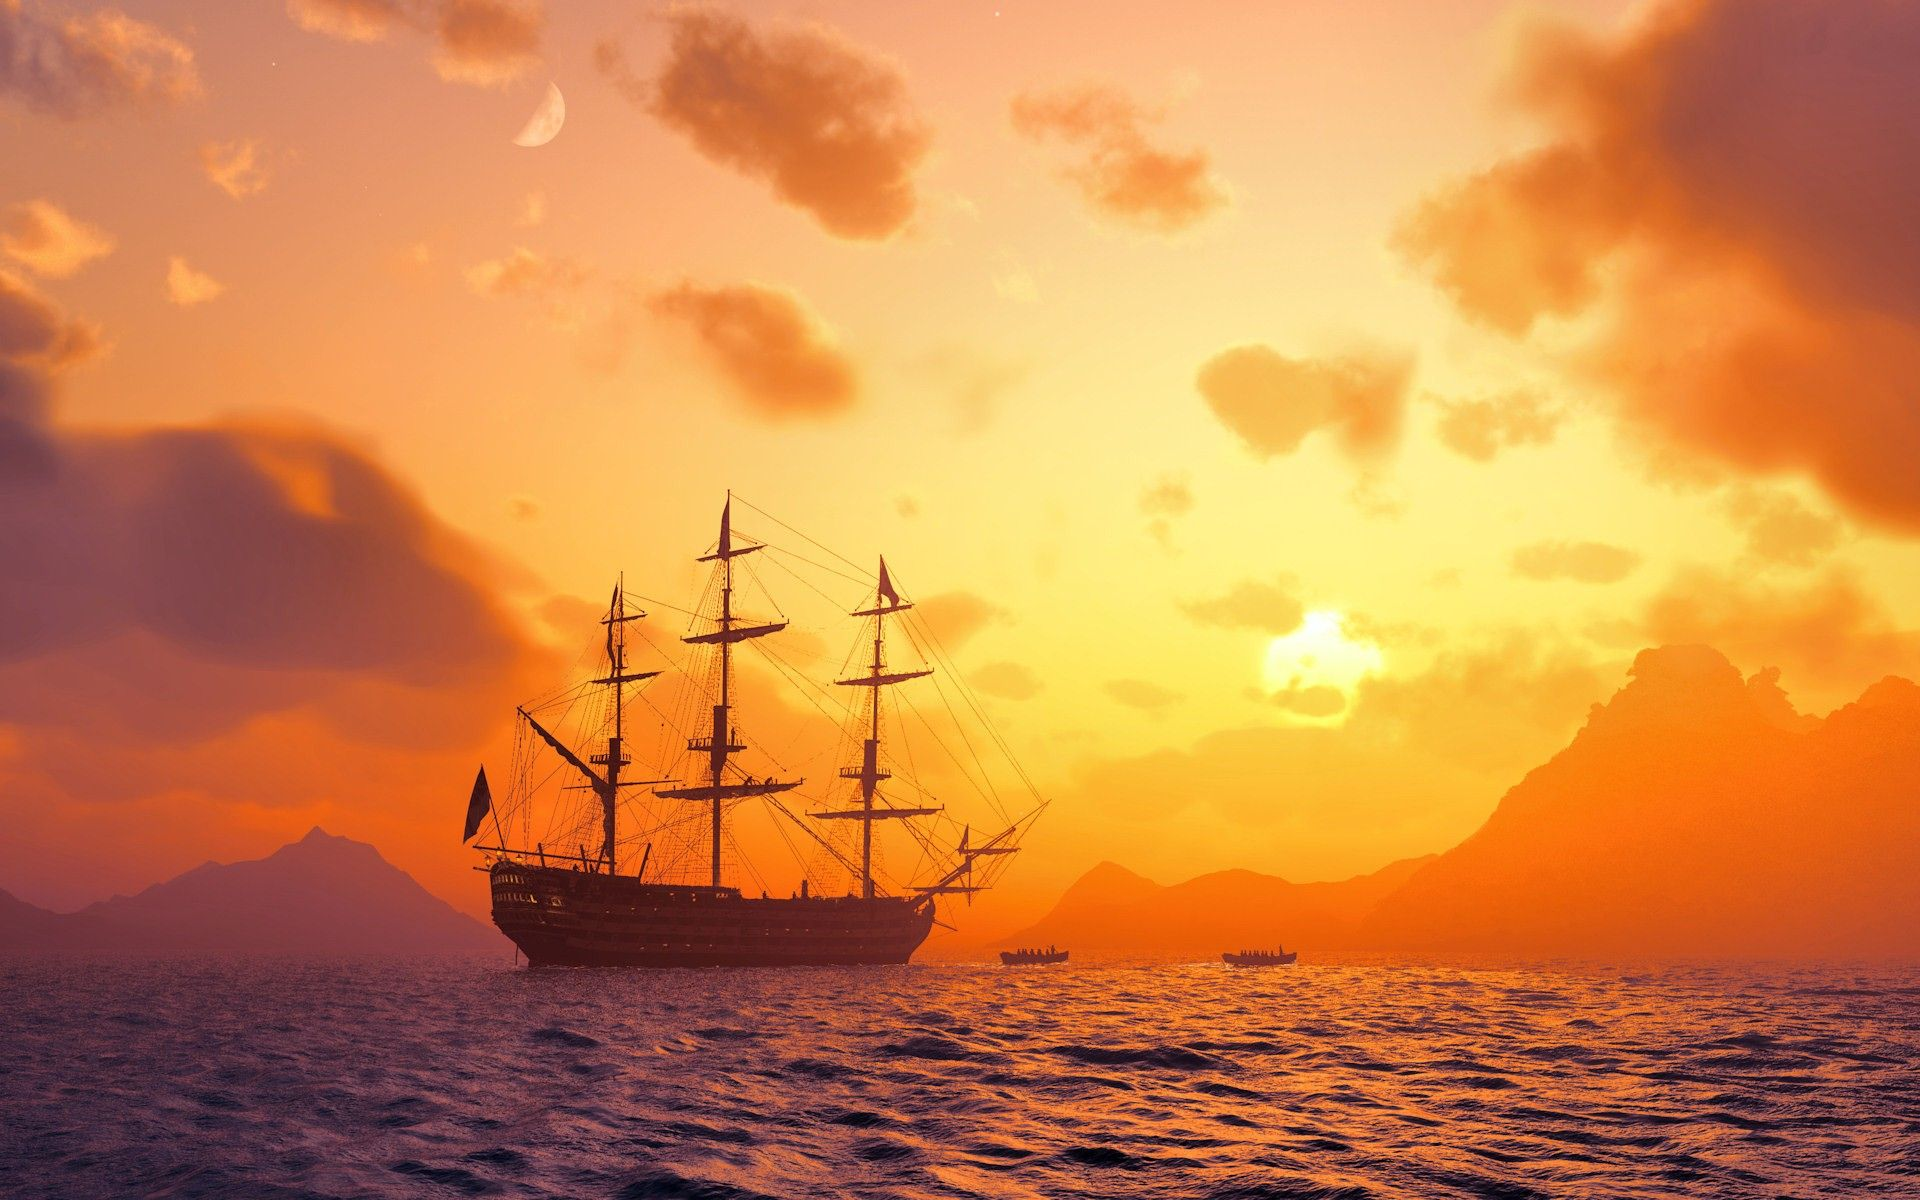 Pirate Ship Wallpapers (53 Wallpapers) - Adorable Wallpapers